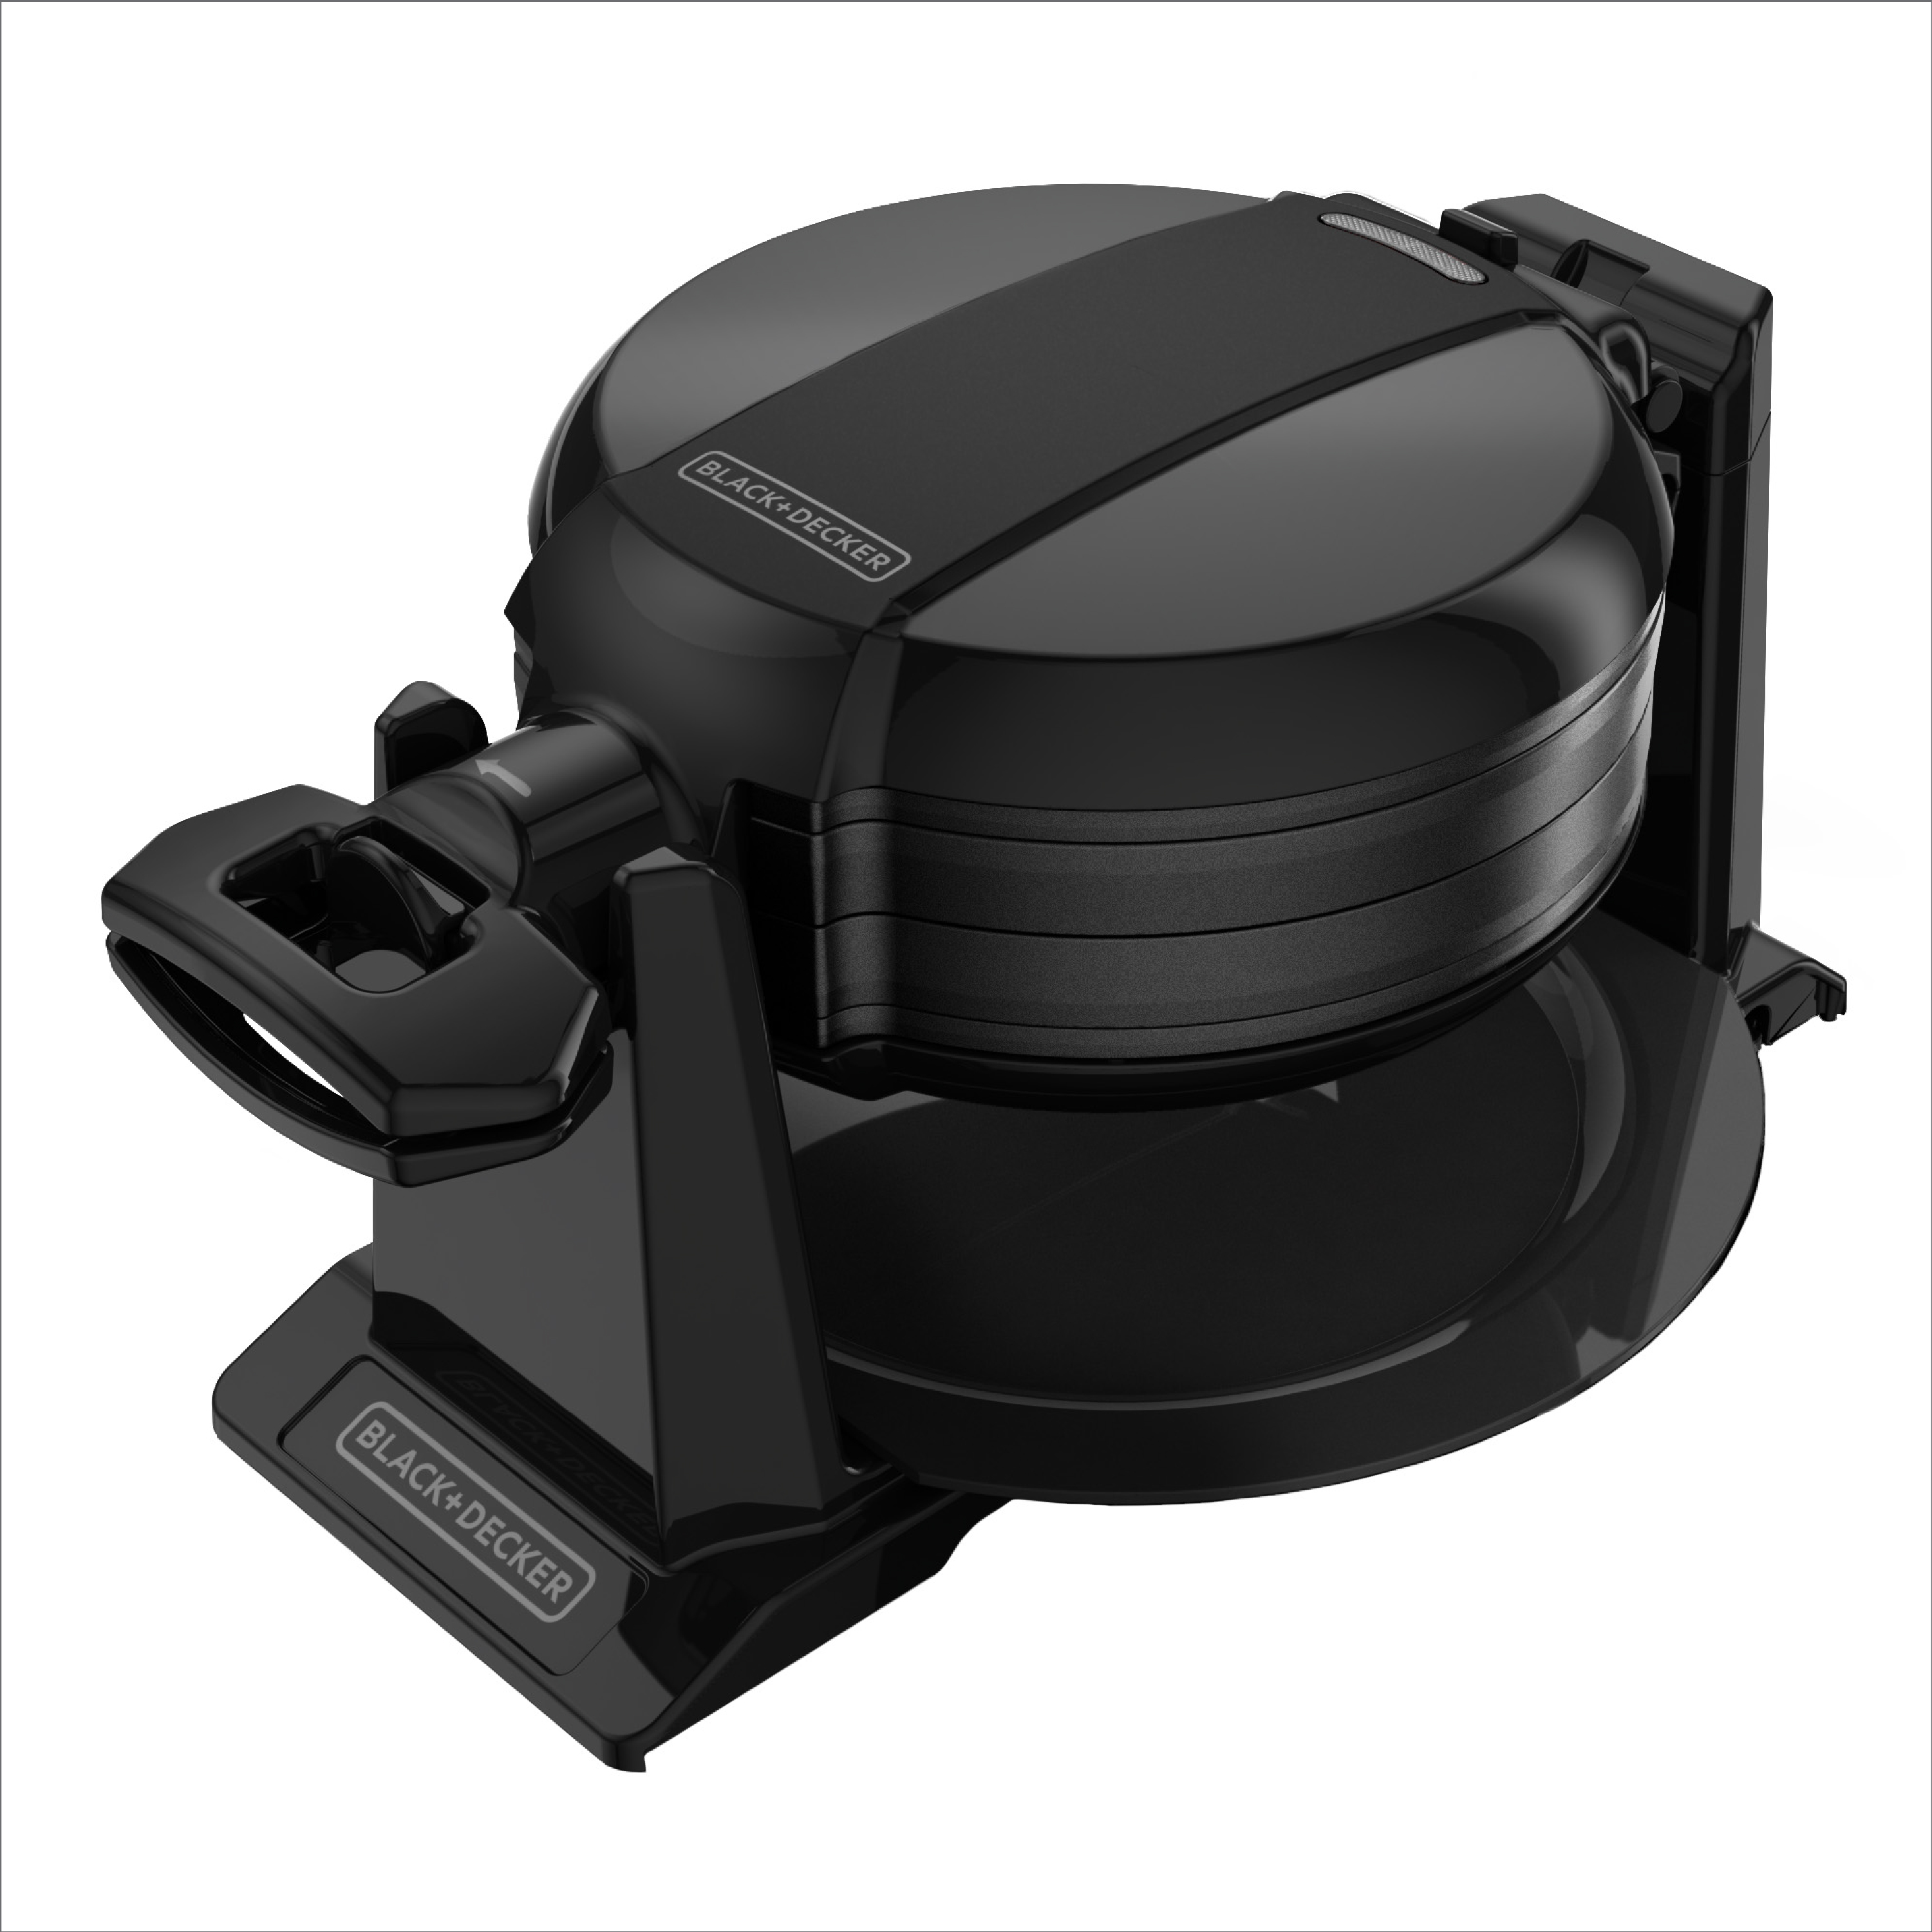 BLACK+DECKER Rotating Waffle Maker with Dual Cooking Plates, Black, WMD200B